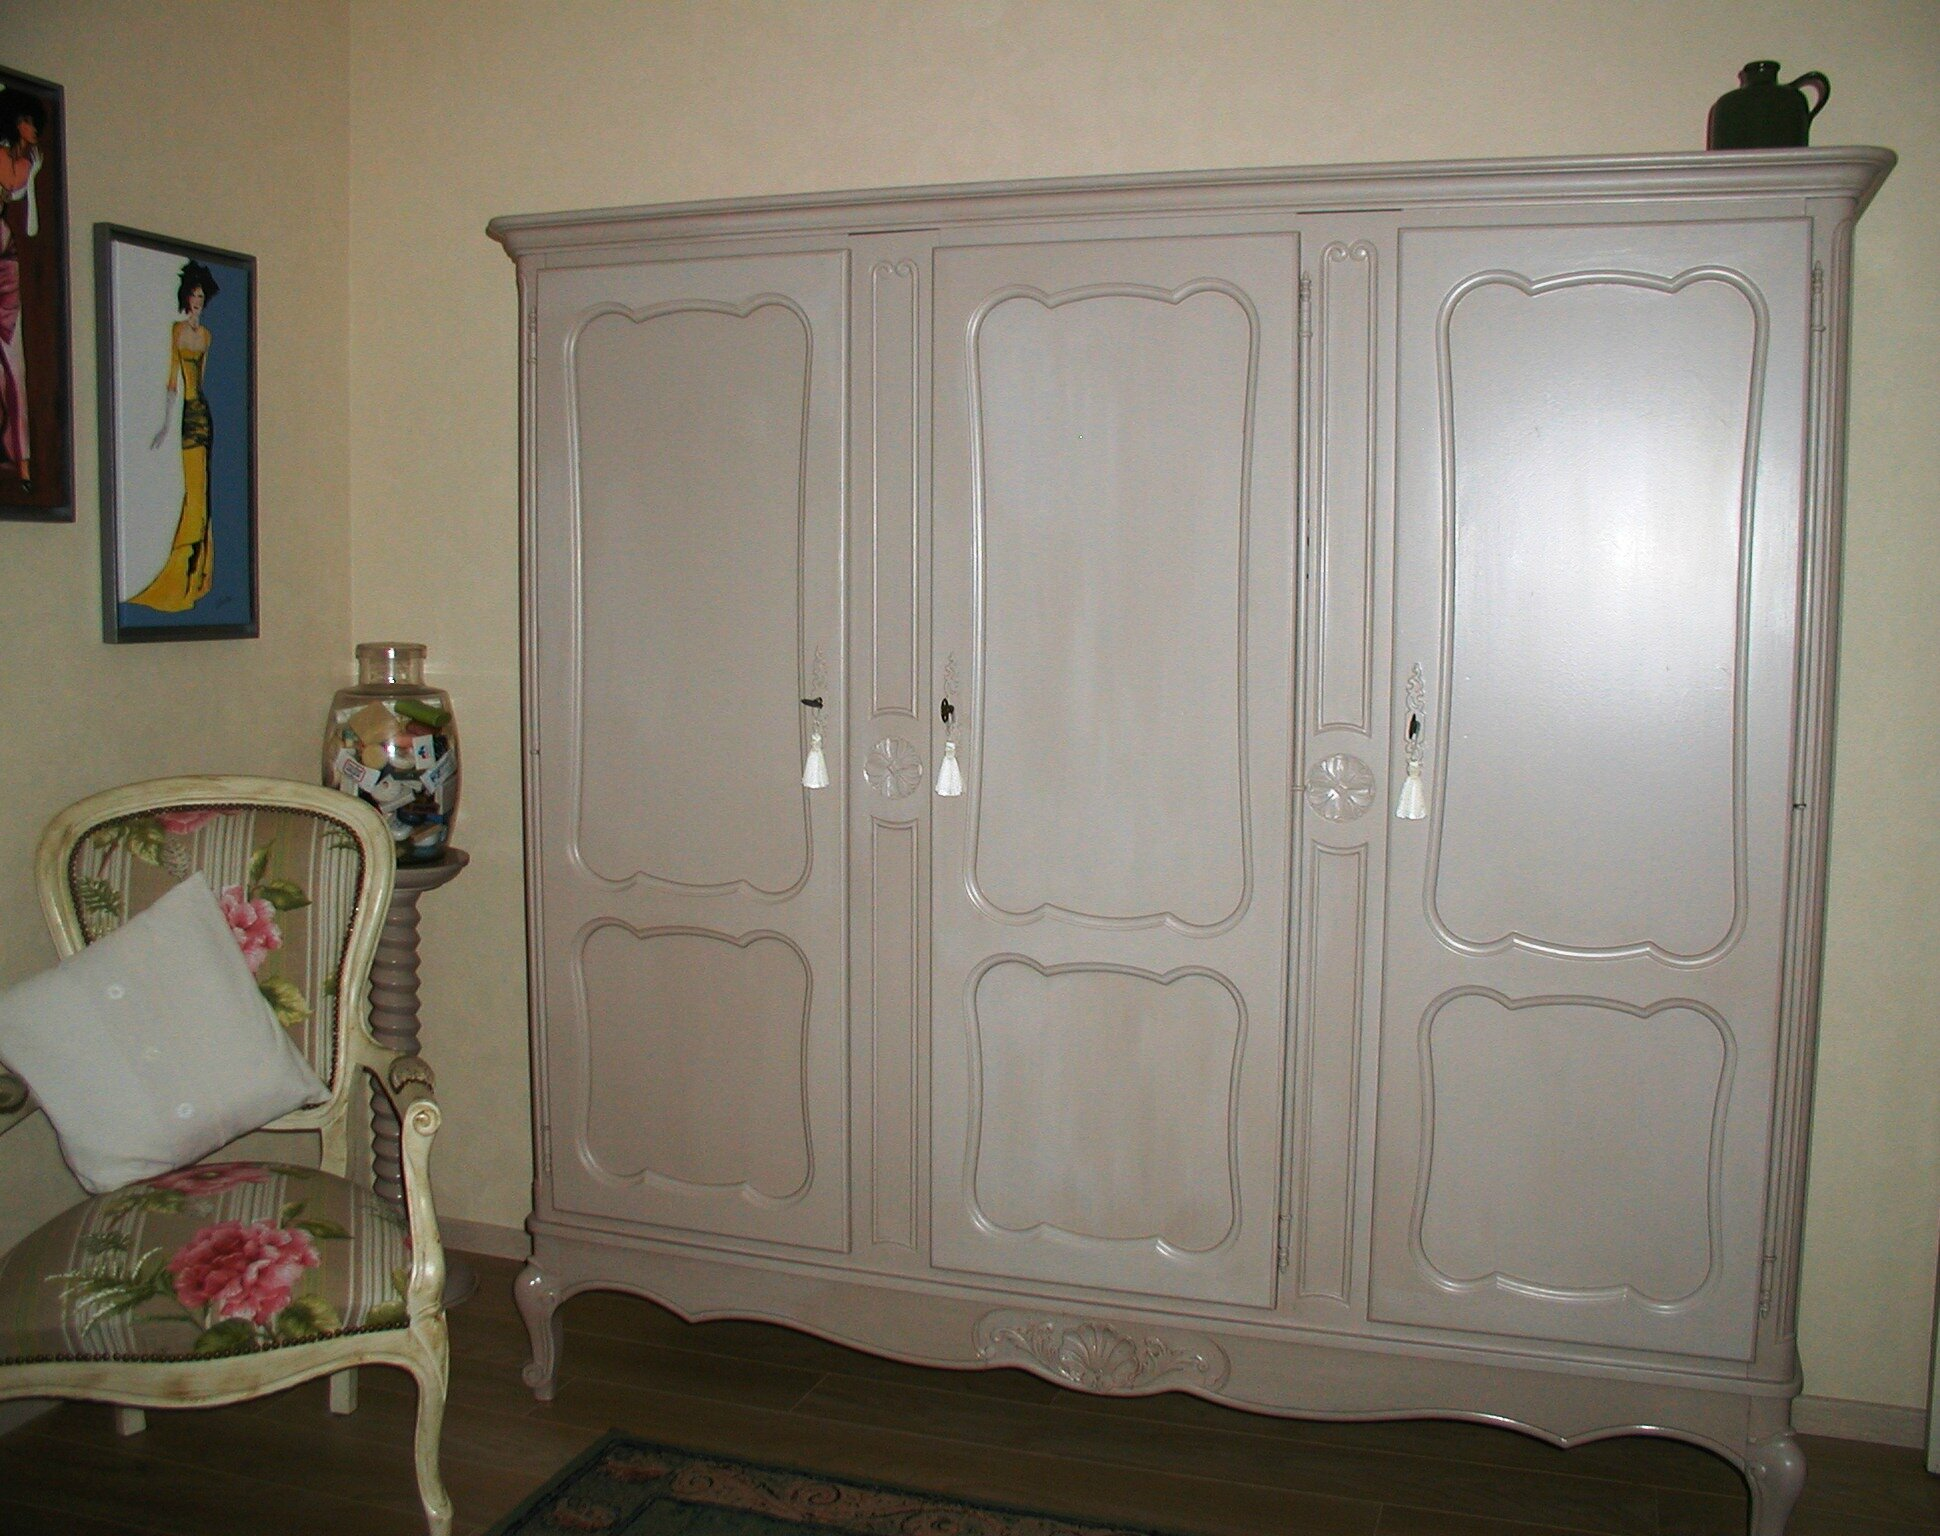 Comment Moderniser Une Vieille Armoire Repeindre Une Armoire 17 Best Images About Repeindre Meubles Mamie